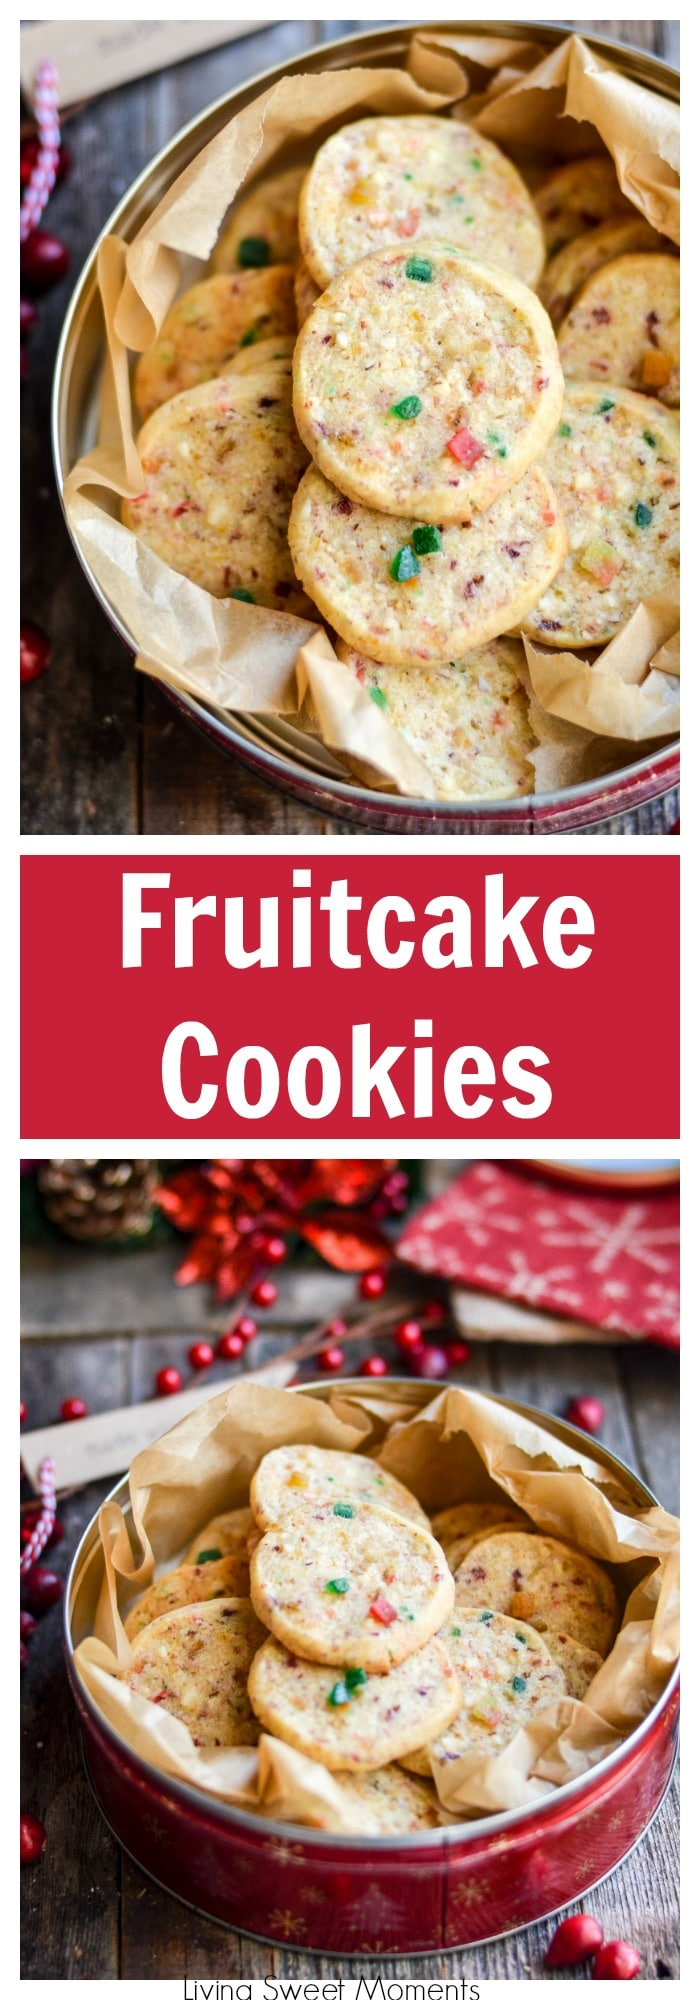 These irresistible Fruitcake Cookies will blow your mind with incredible flavor & soft texture. The perfect Christmas cookie recipe for exchanges & parties